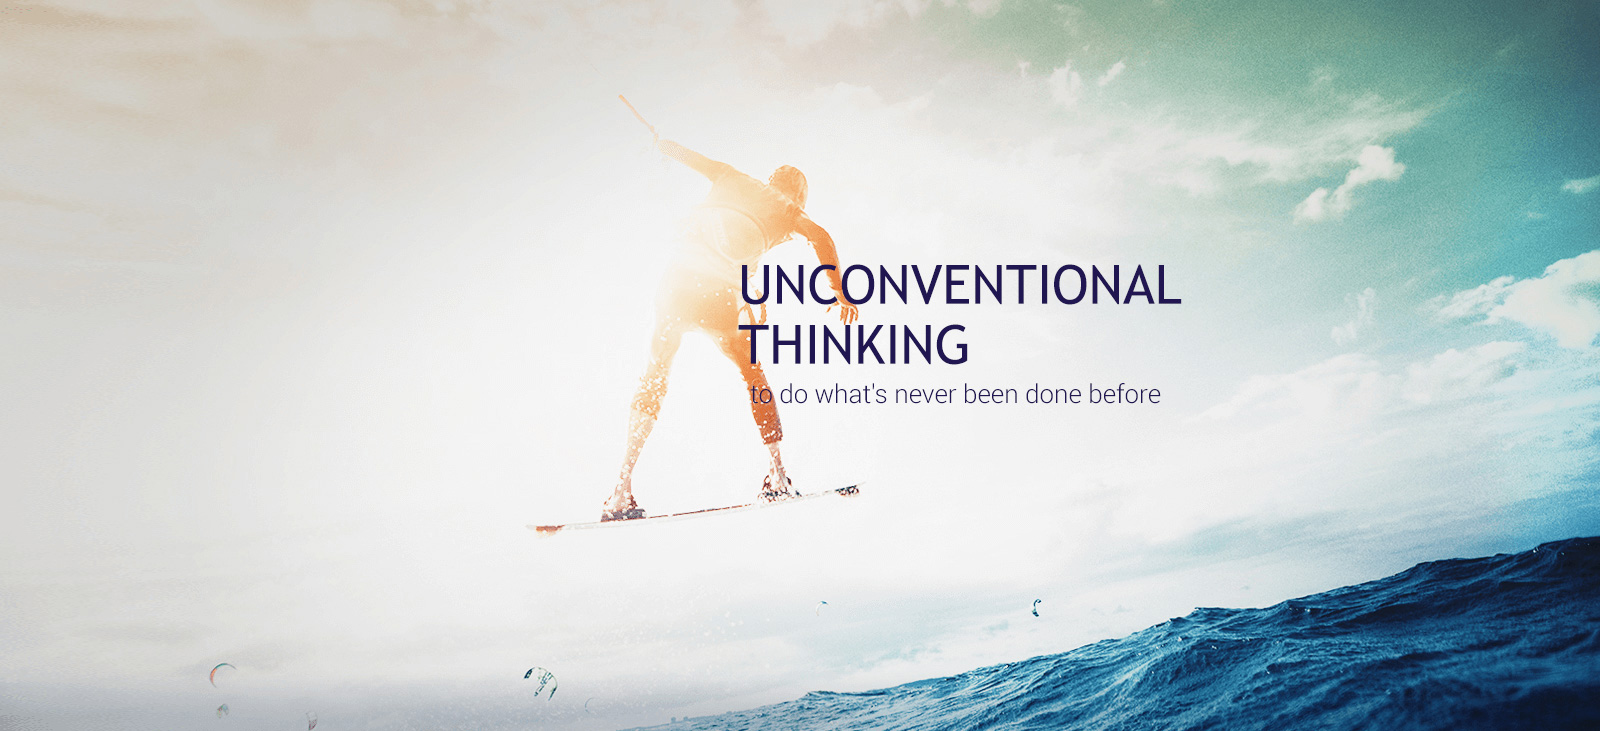 Unconventional Thinking - to do what's never been done before